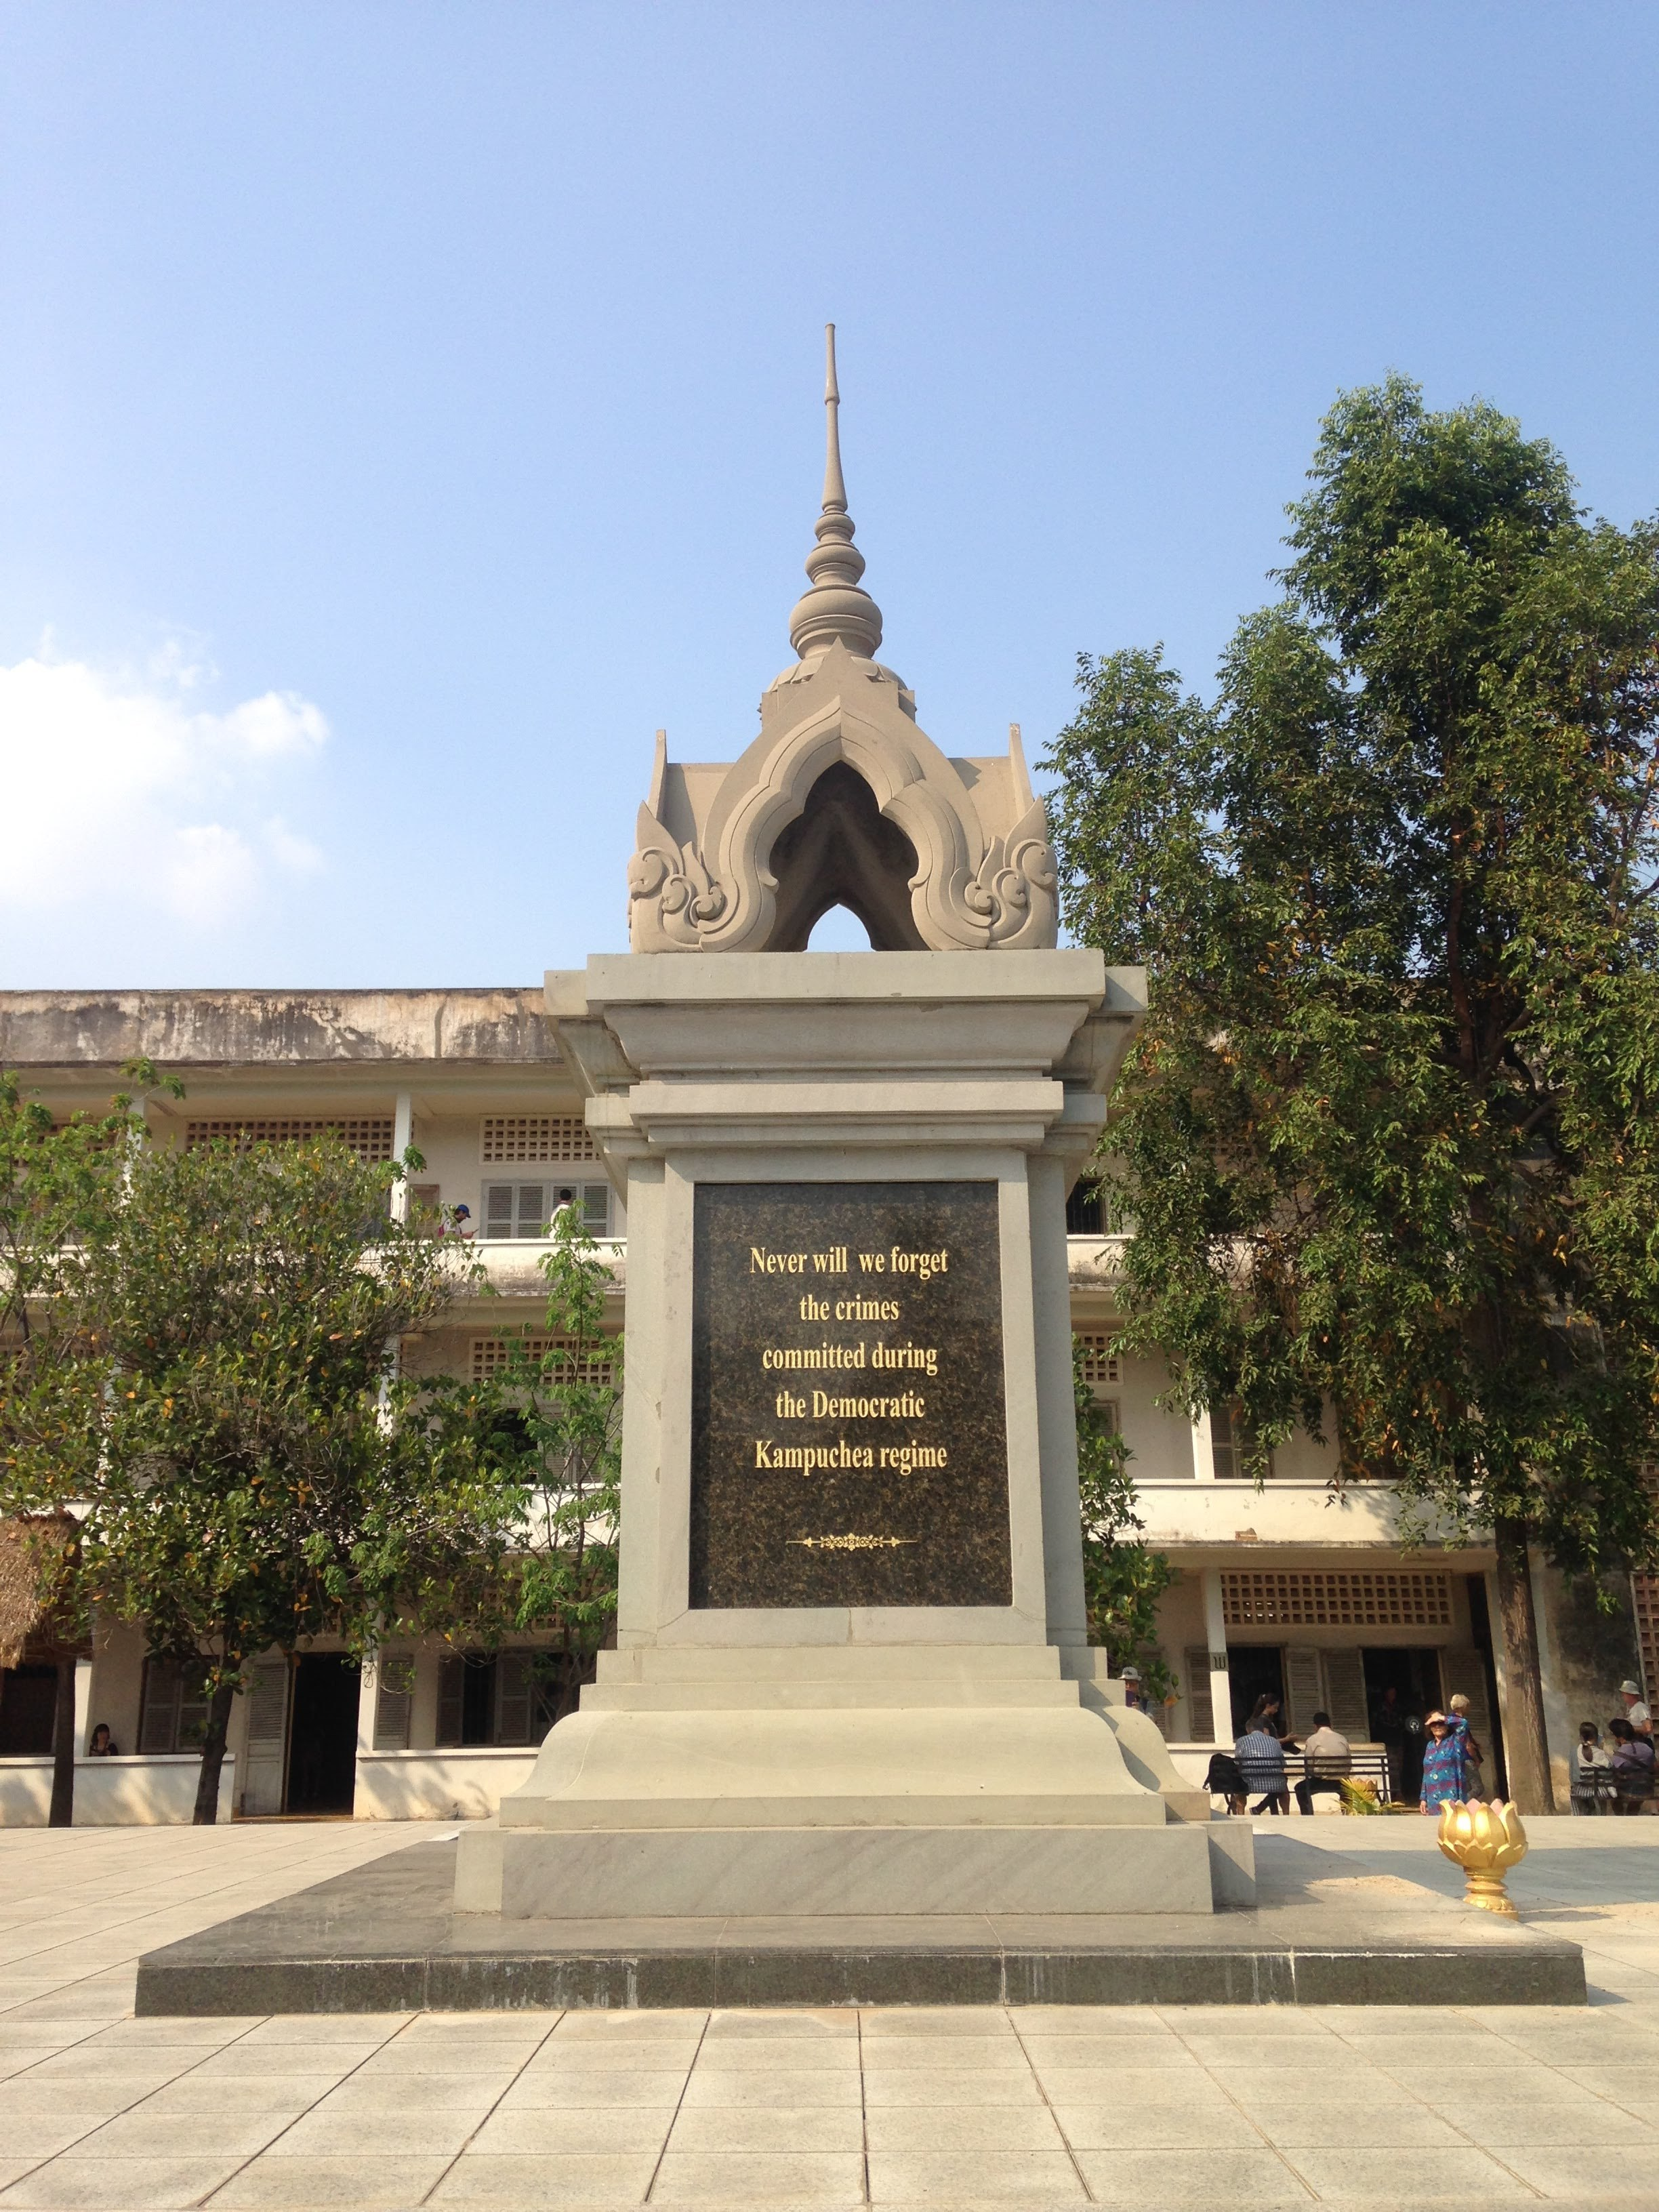 a memorial to the martyrs of the Khmer Rouge regime at Tuol Sleng Genocide Museum in Phnom Penh